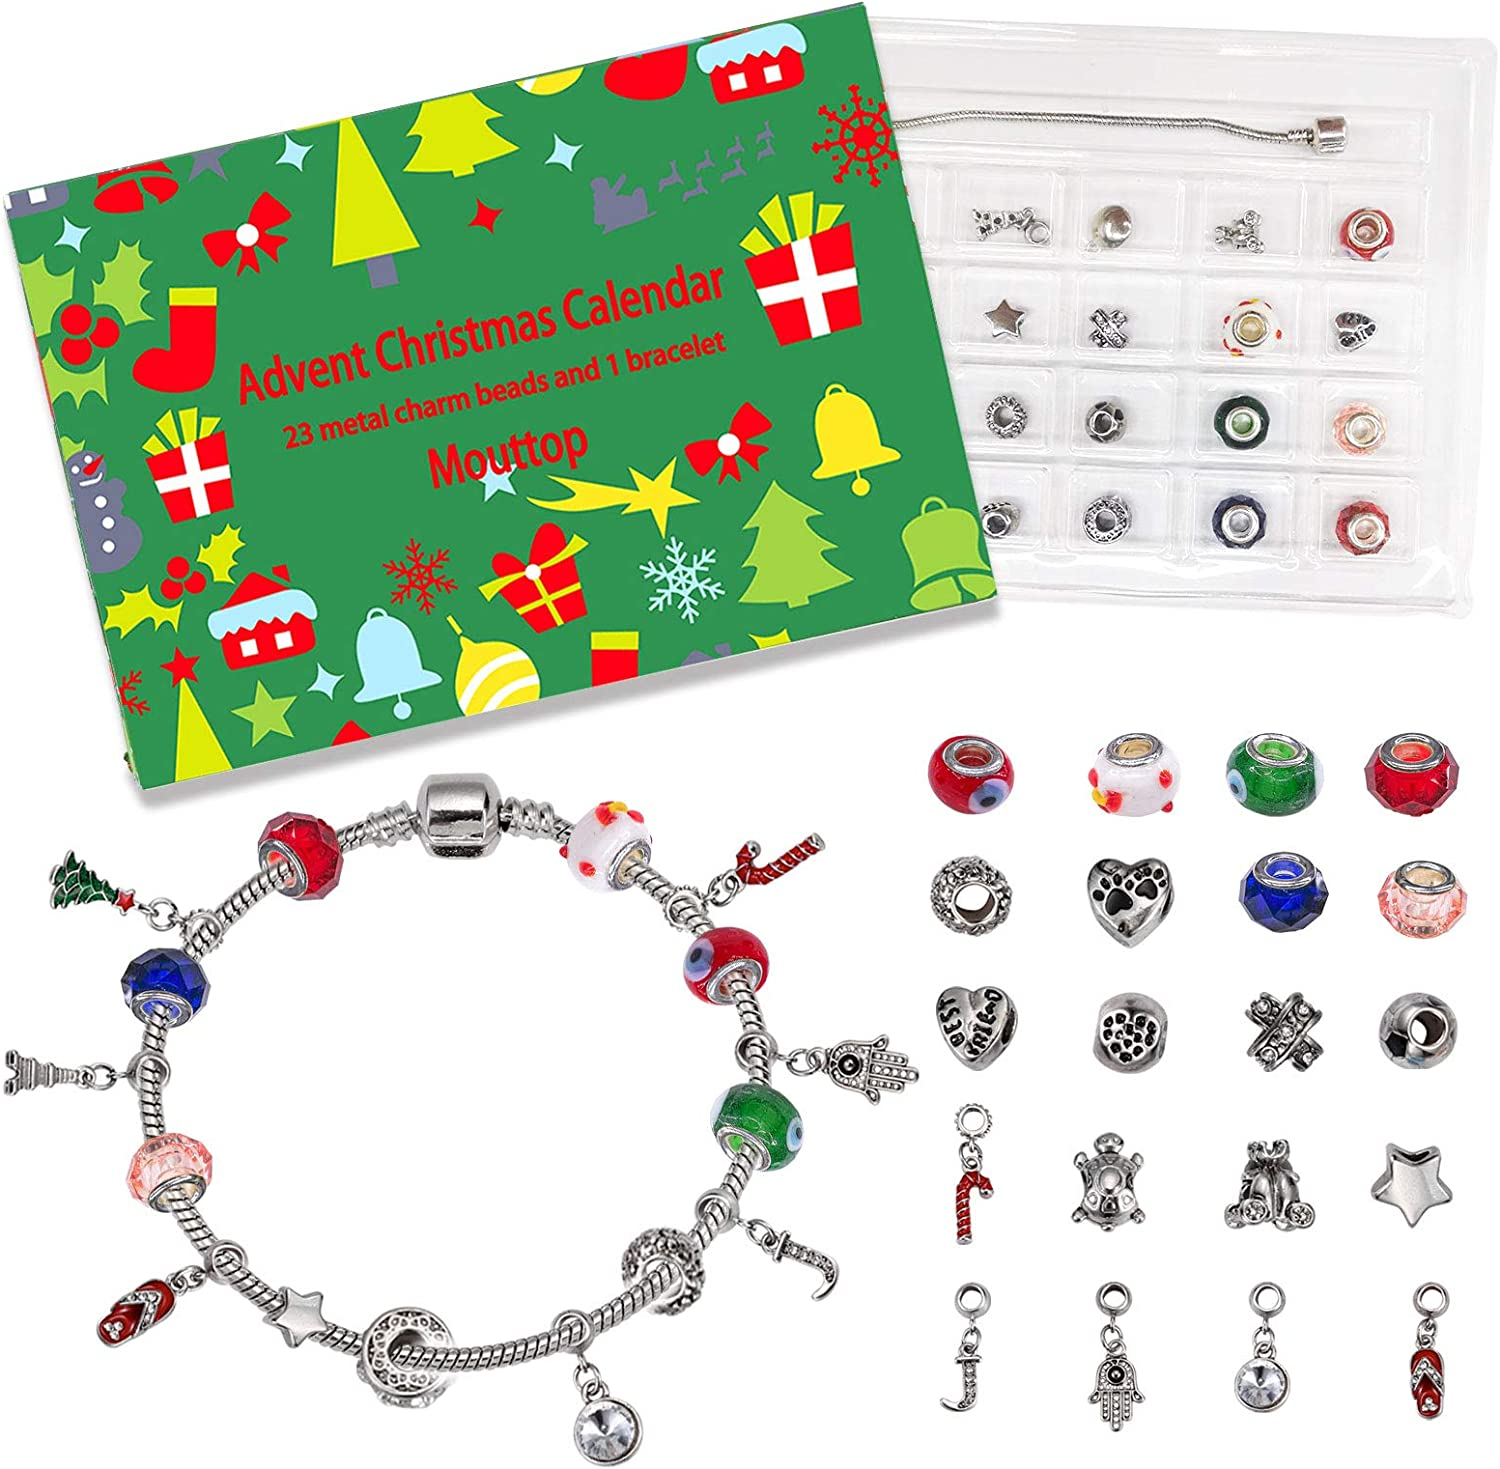 Christmas Bracelet Pendant Ornaments Countdown Advent Calendar Jewelry Findings